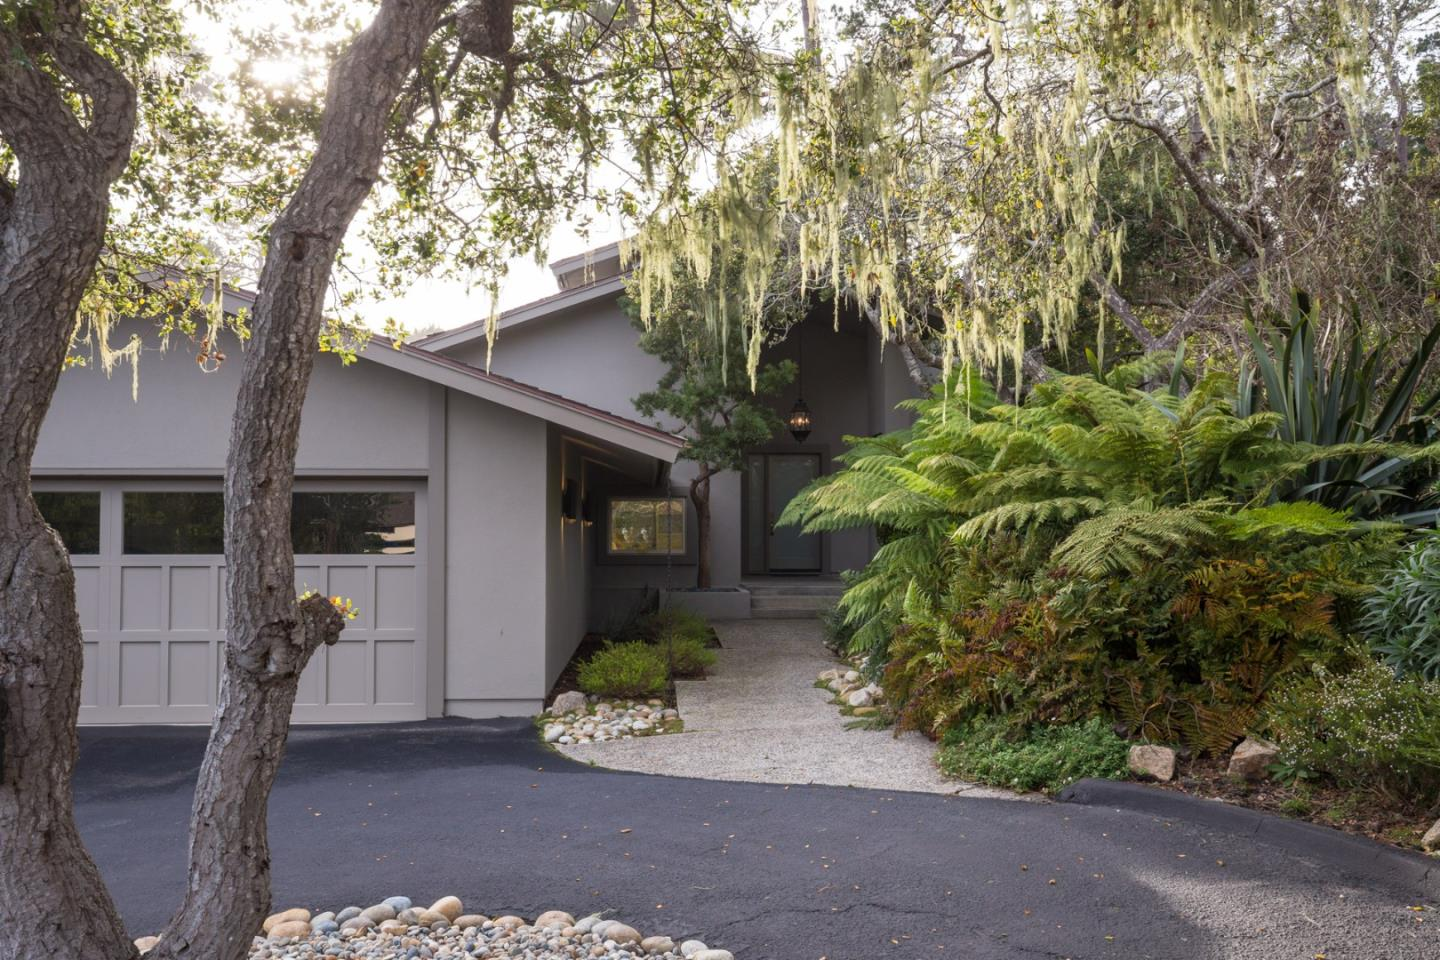 3301 17 mile dr 16 pebble beach ca 93953 mls 81548813 for 17 mile drive celebrity homes